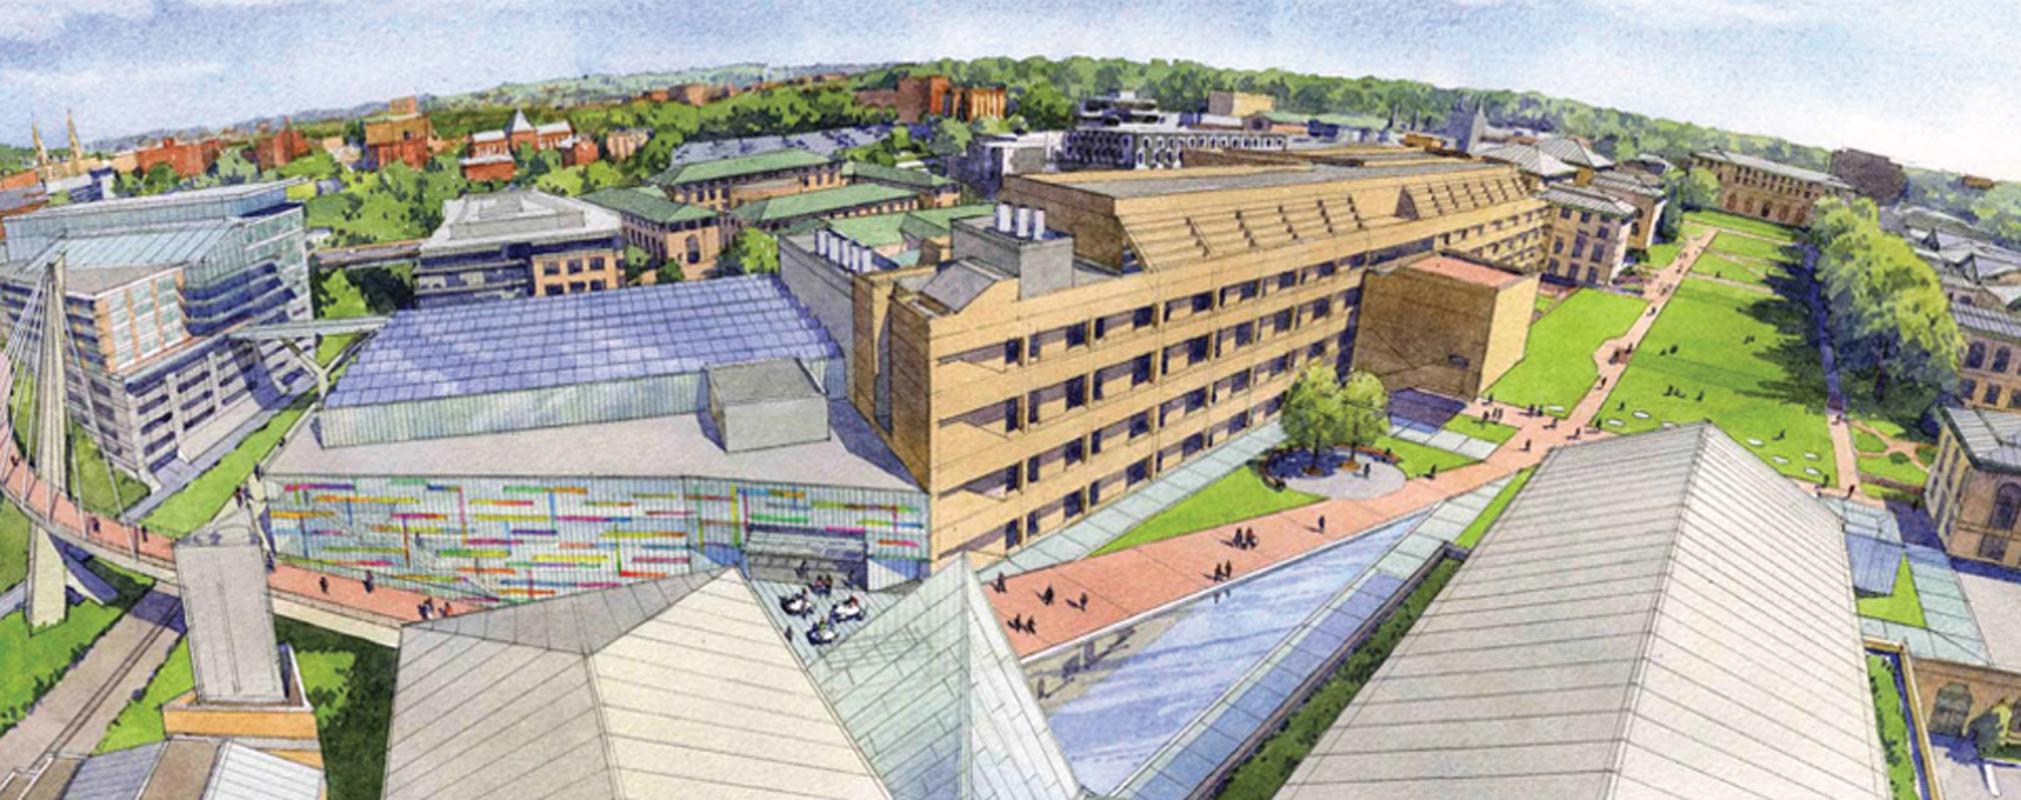 The new building will sit among Wean, Hamerschlag, and Roberts Engineering halls, as seen above in the artist's rendition created by the architectural firm designing the building, OFFICE 52. (credit: Courtesy of OFFICE 52)